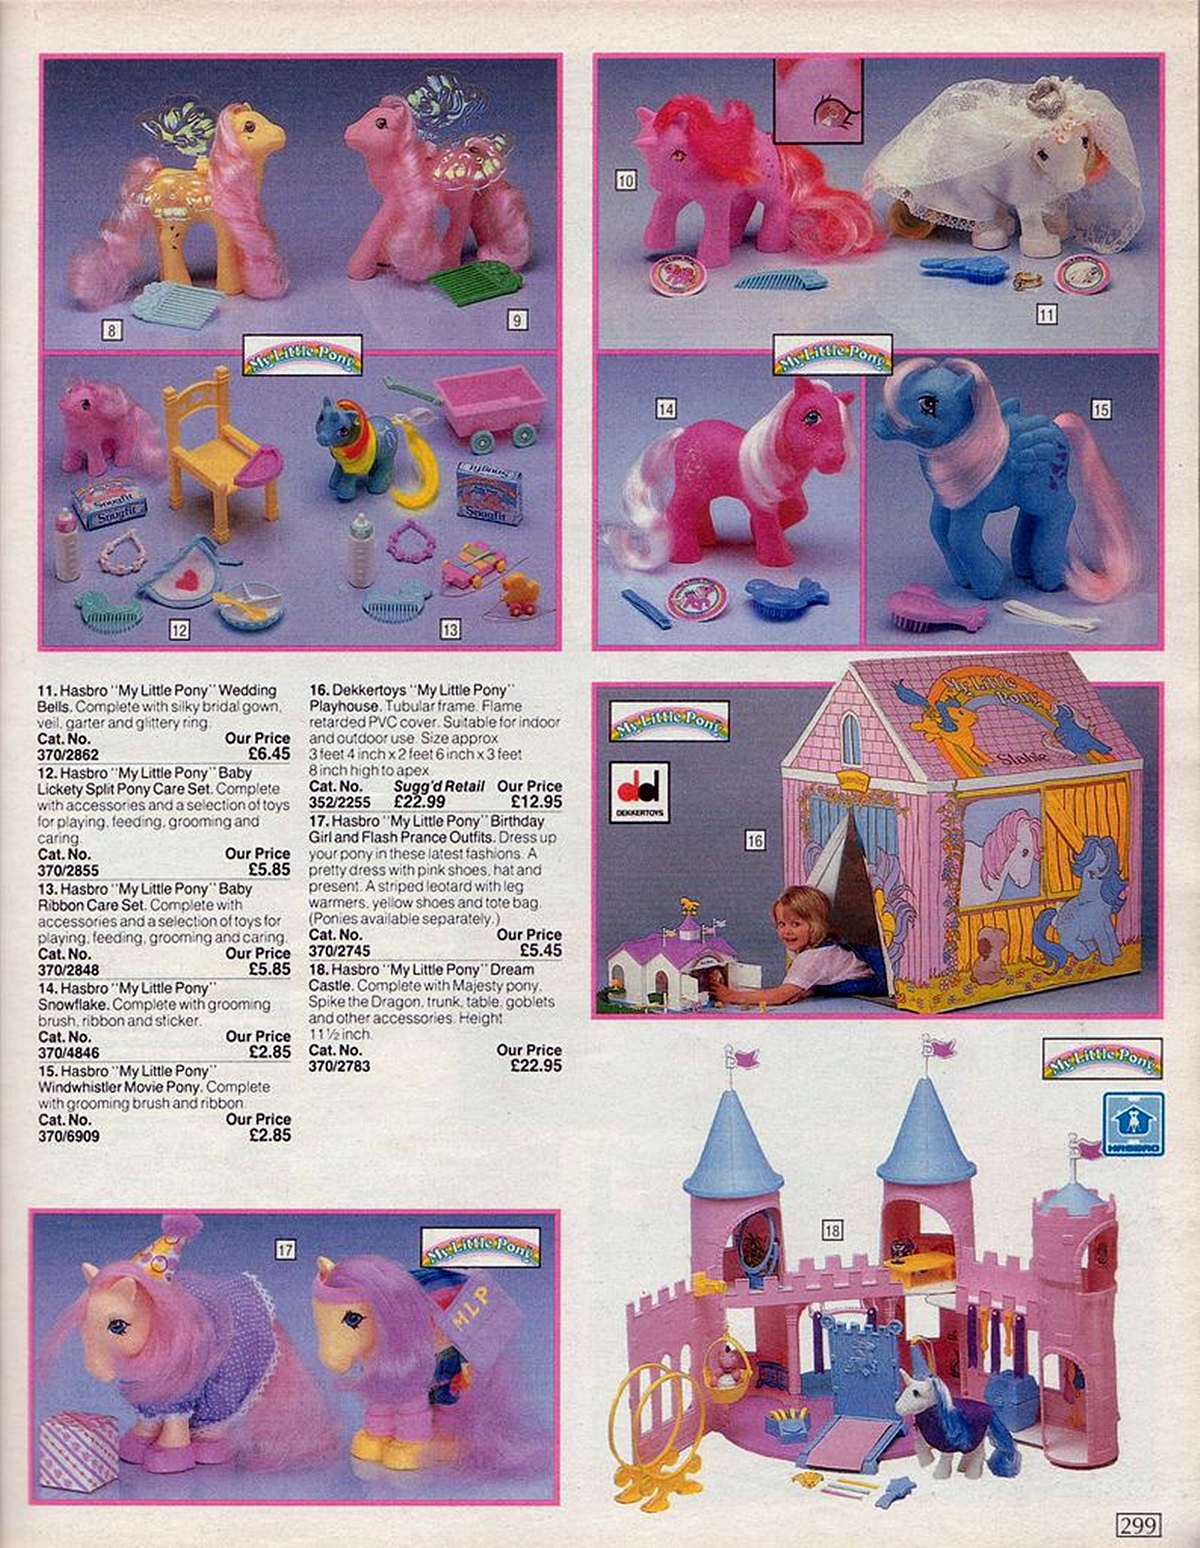 My Little Pony in an Argos catalogue from the 80s